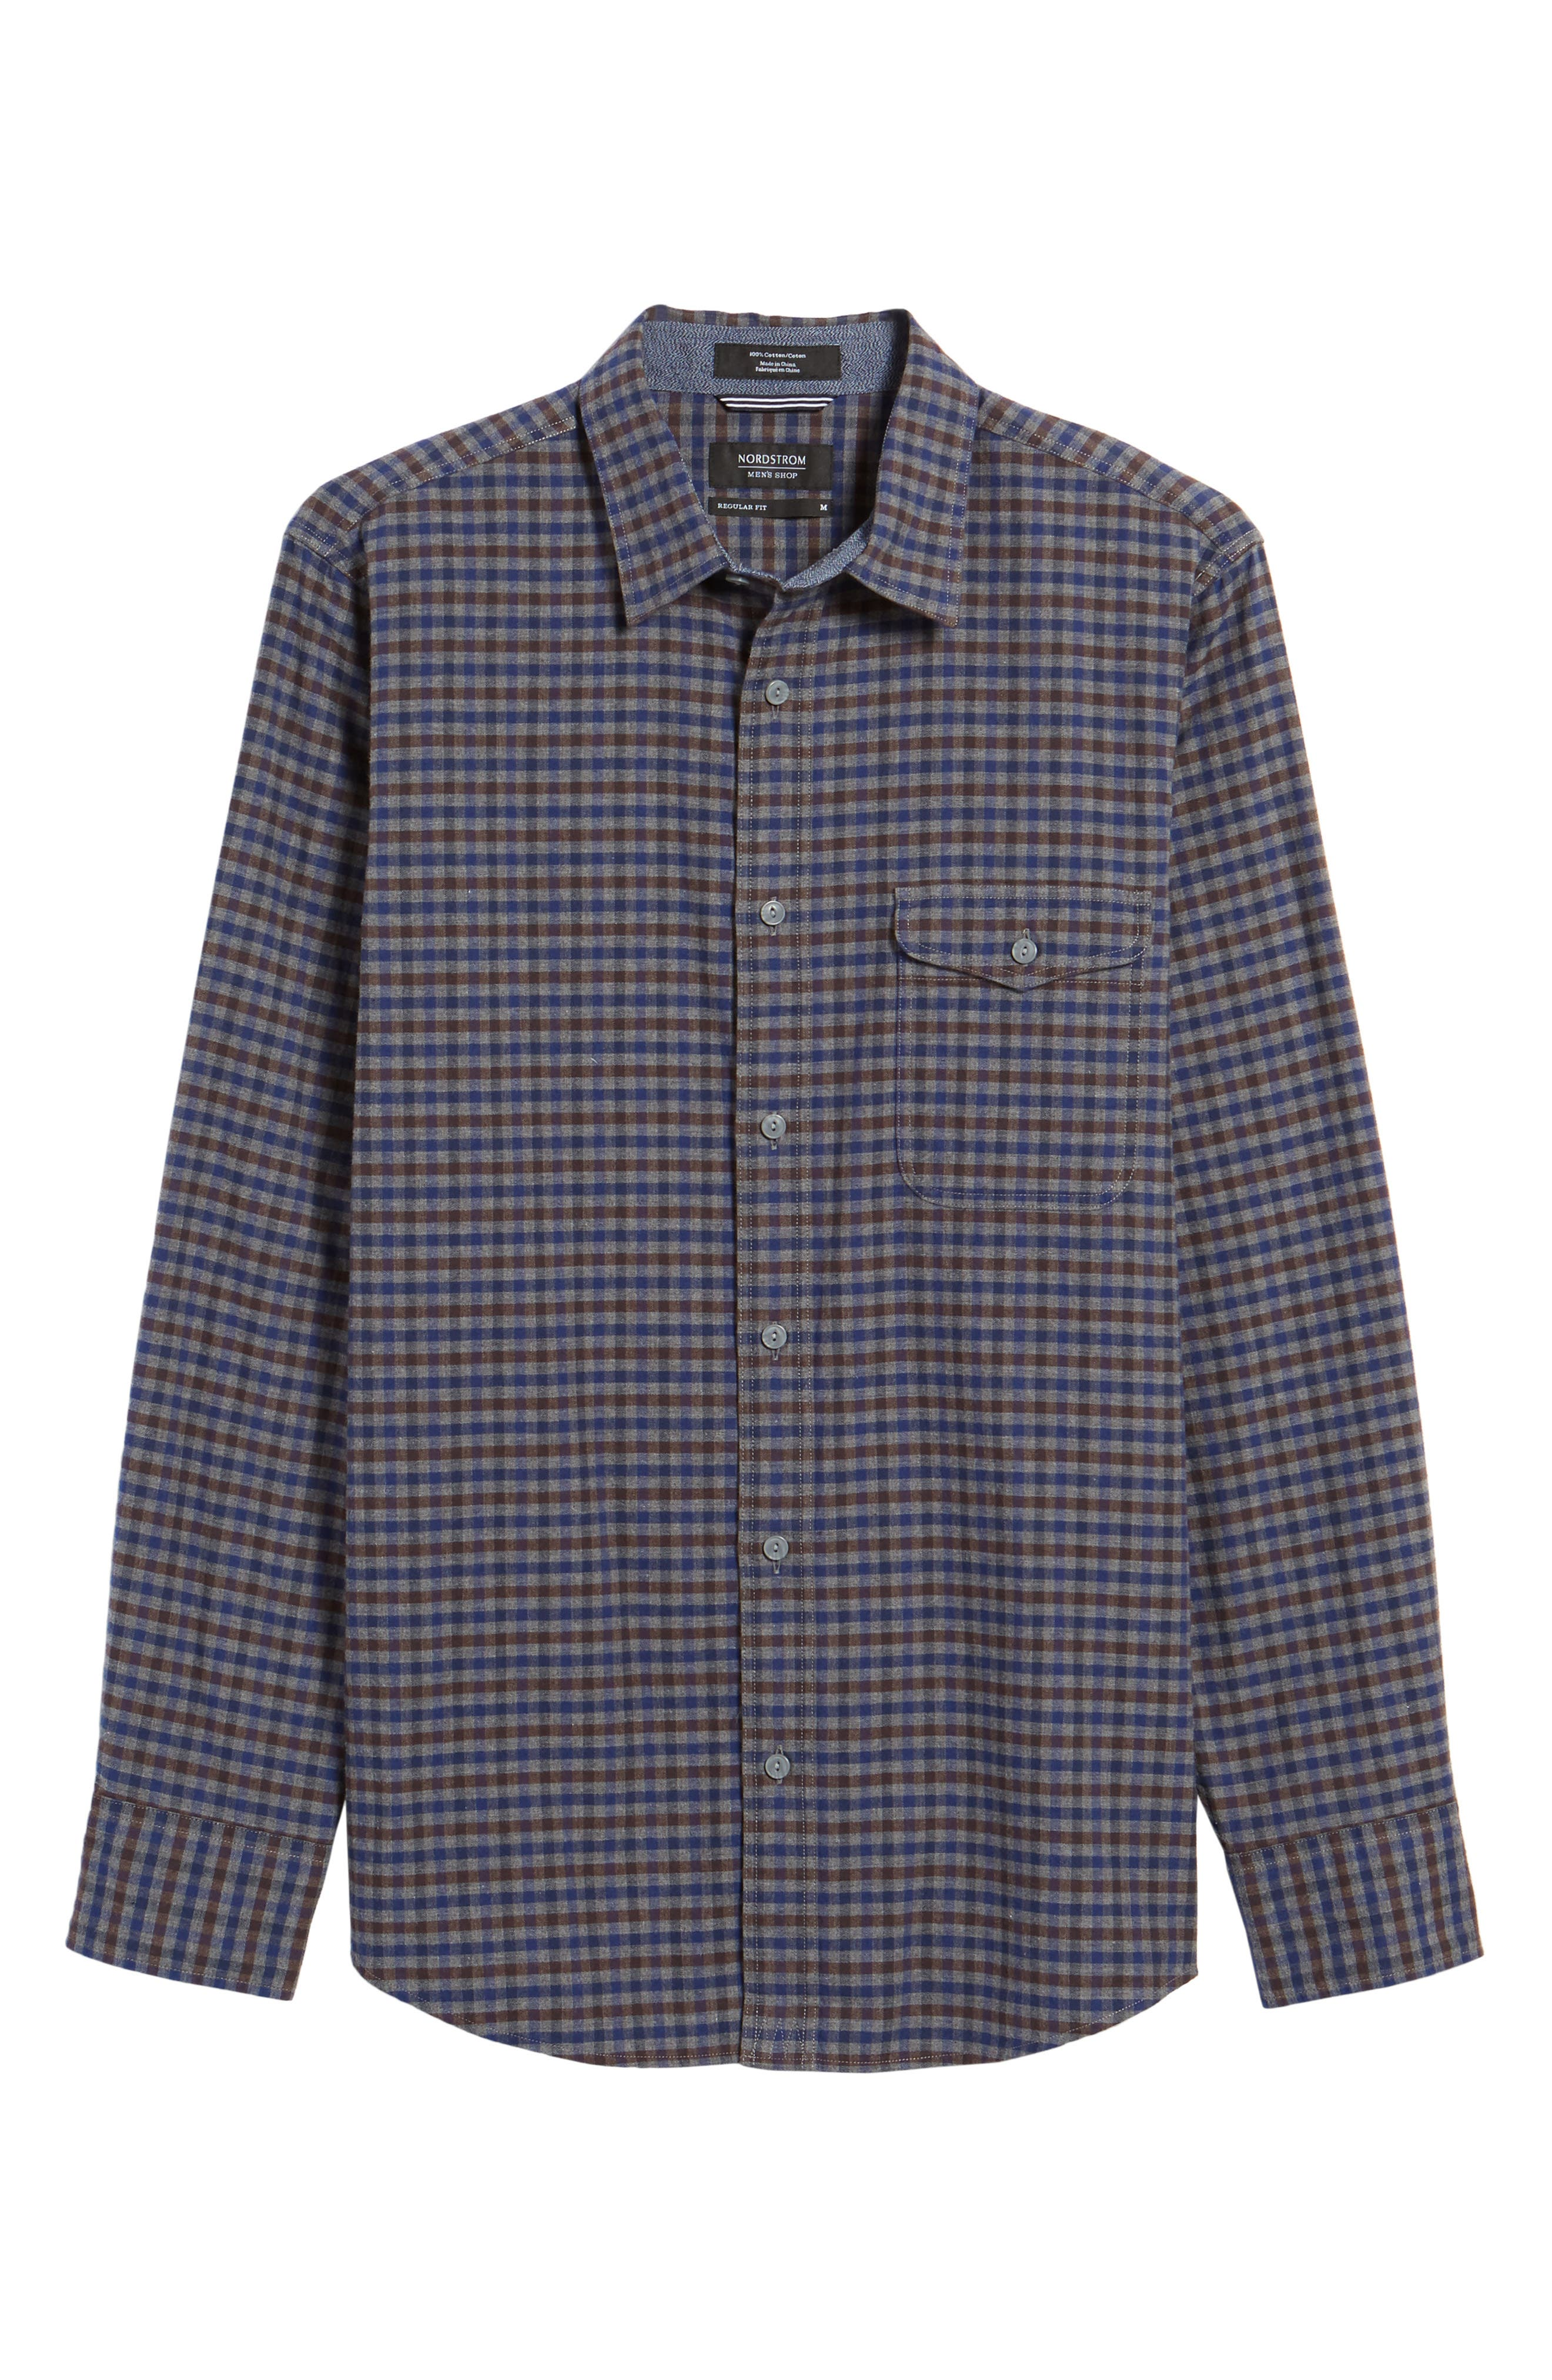 Regular Fit Lumber Check Flannel Shirt,                             Alternate thumbnail 6, color,                             030